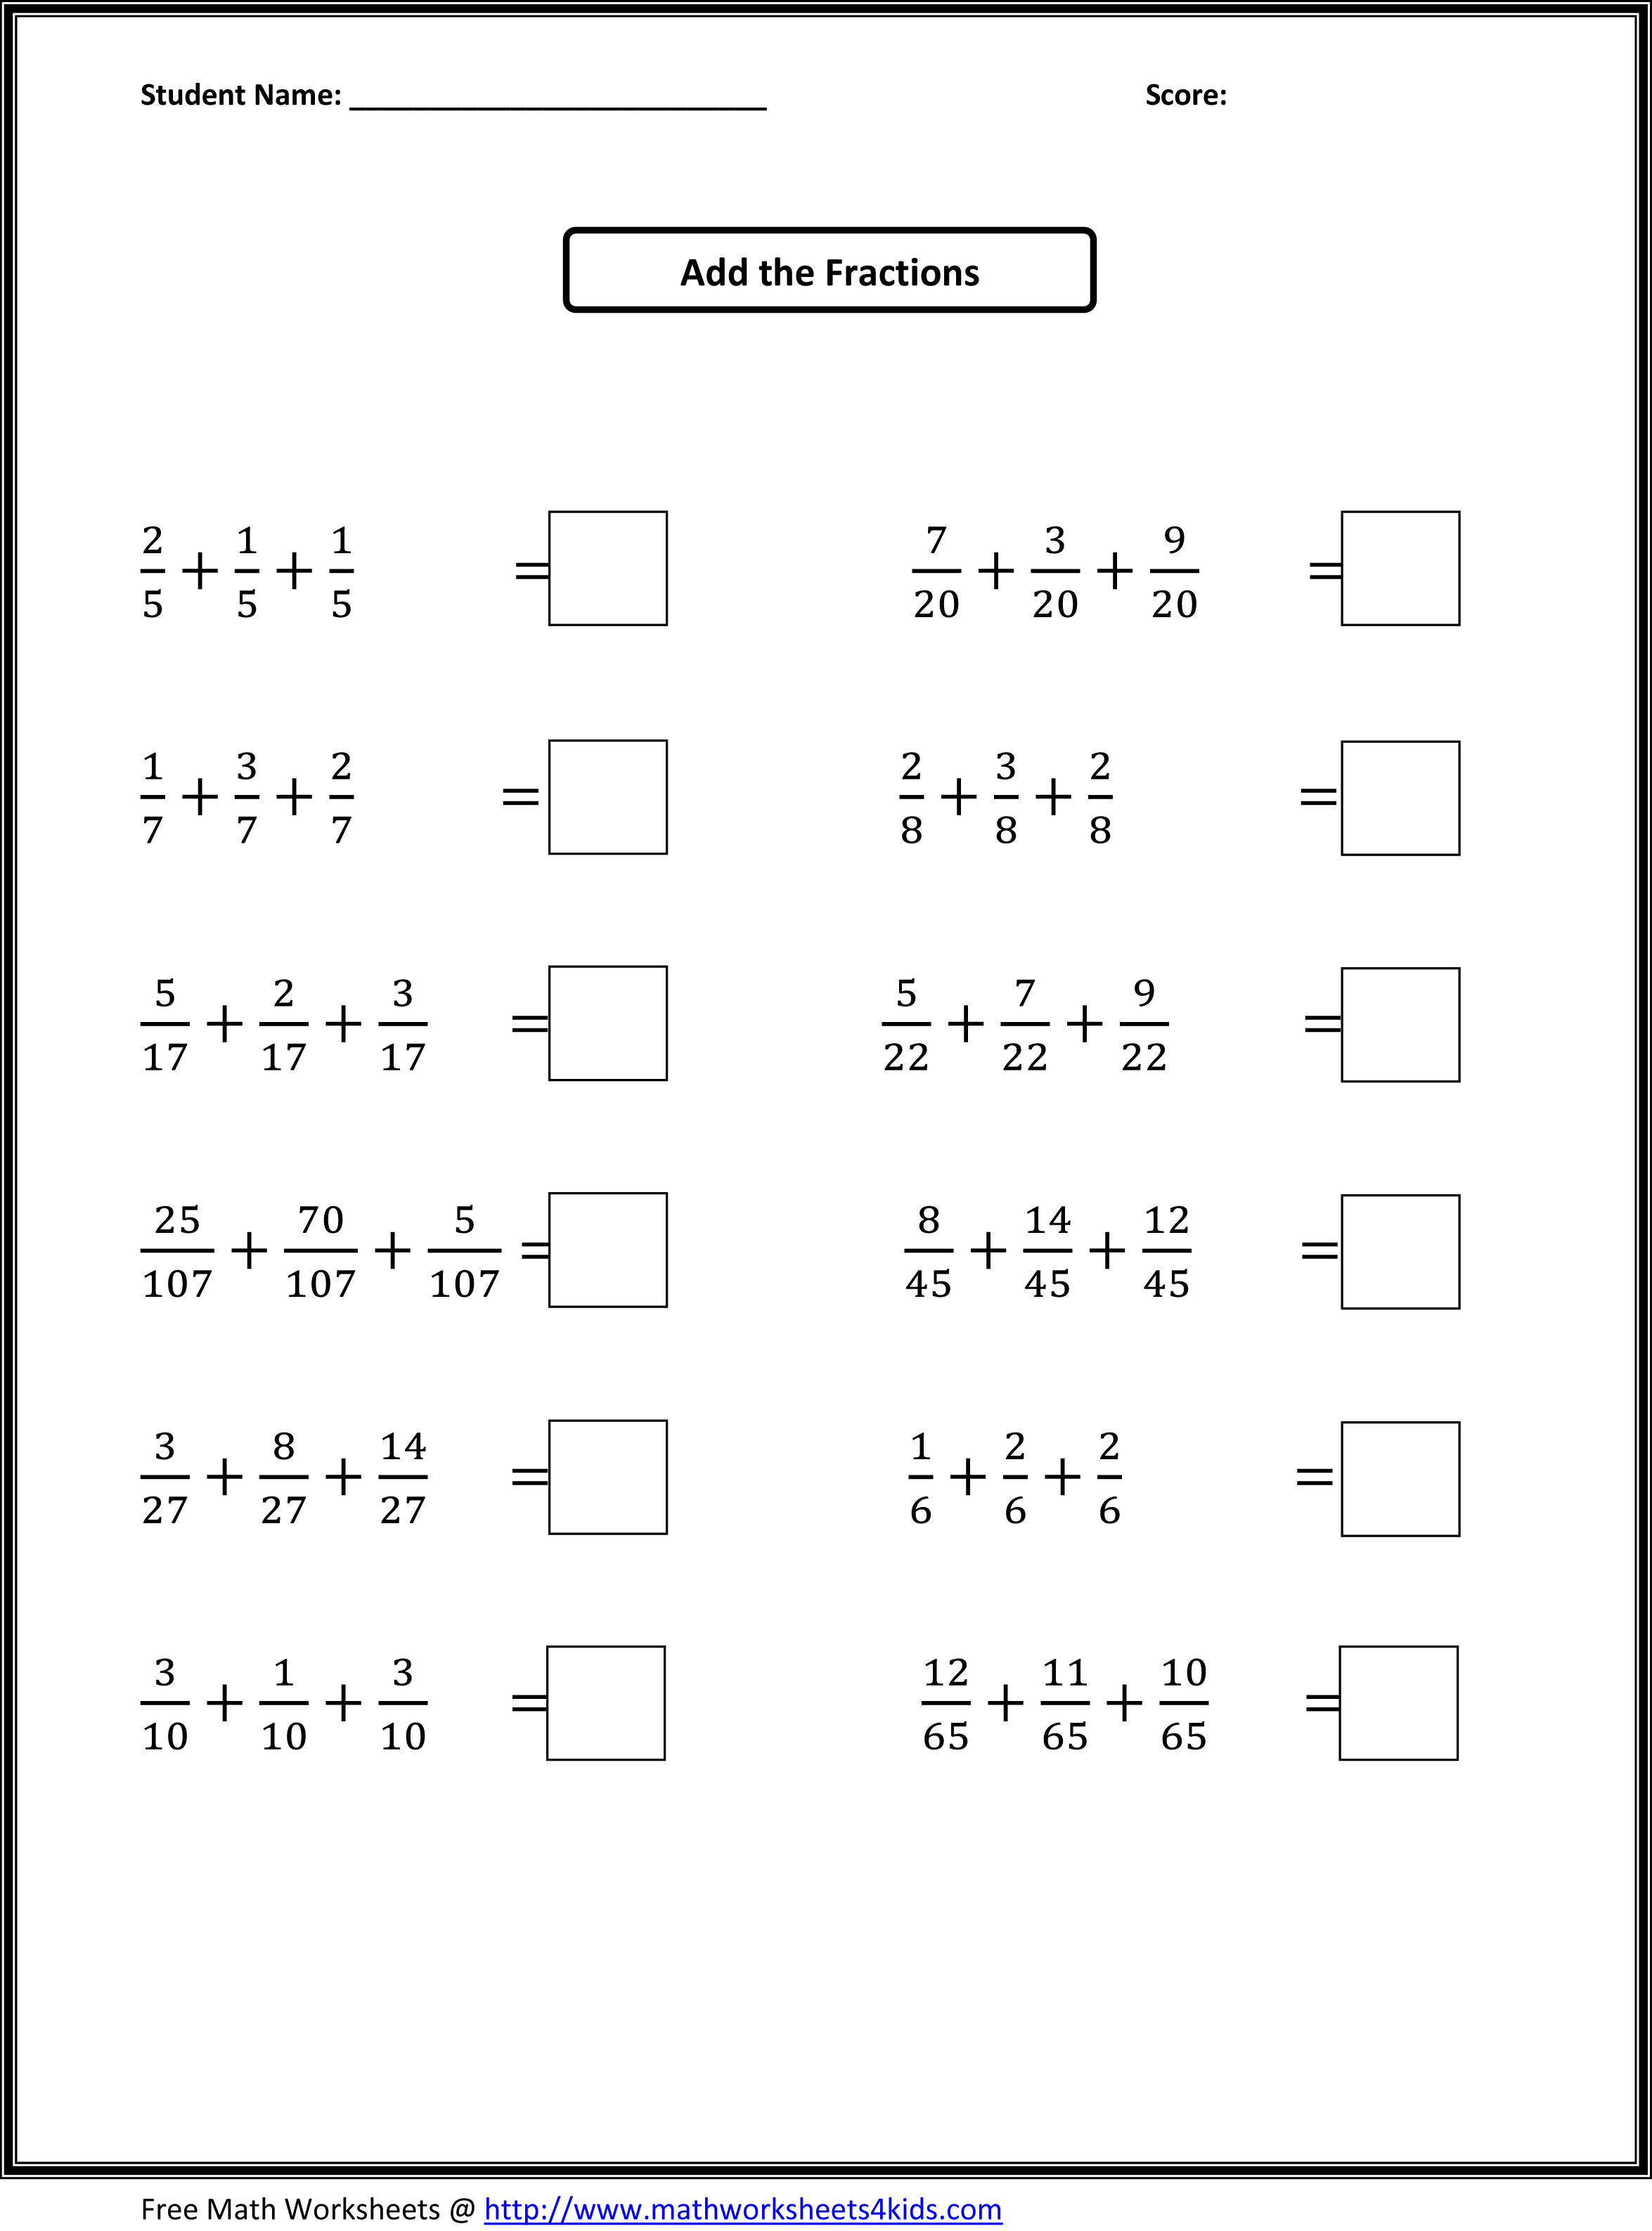 math worksheet : 4th grade math worksheets multiplying fractions  kids activities : Adding And Subtracting Decimals Worksheets 4th Grade